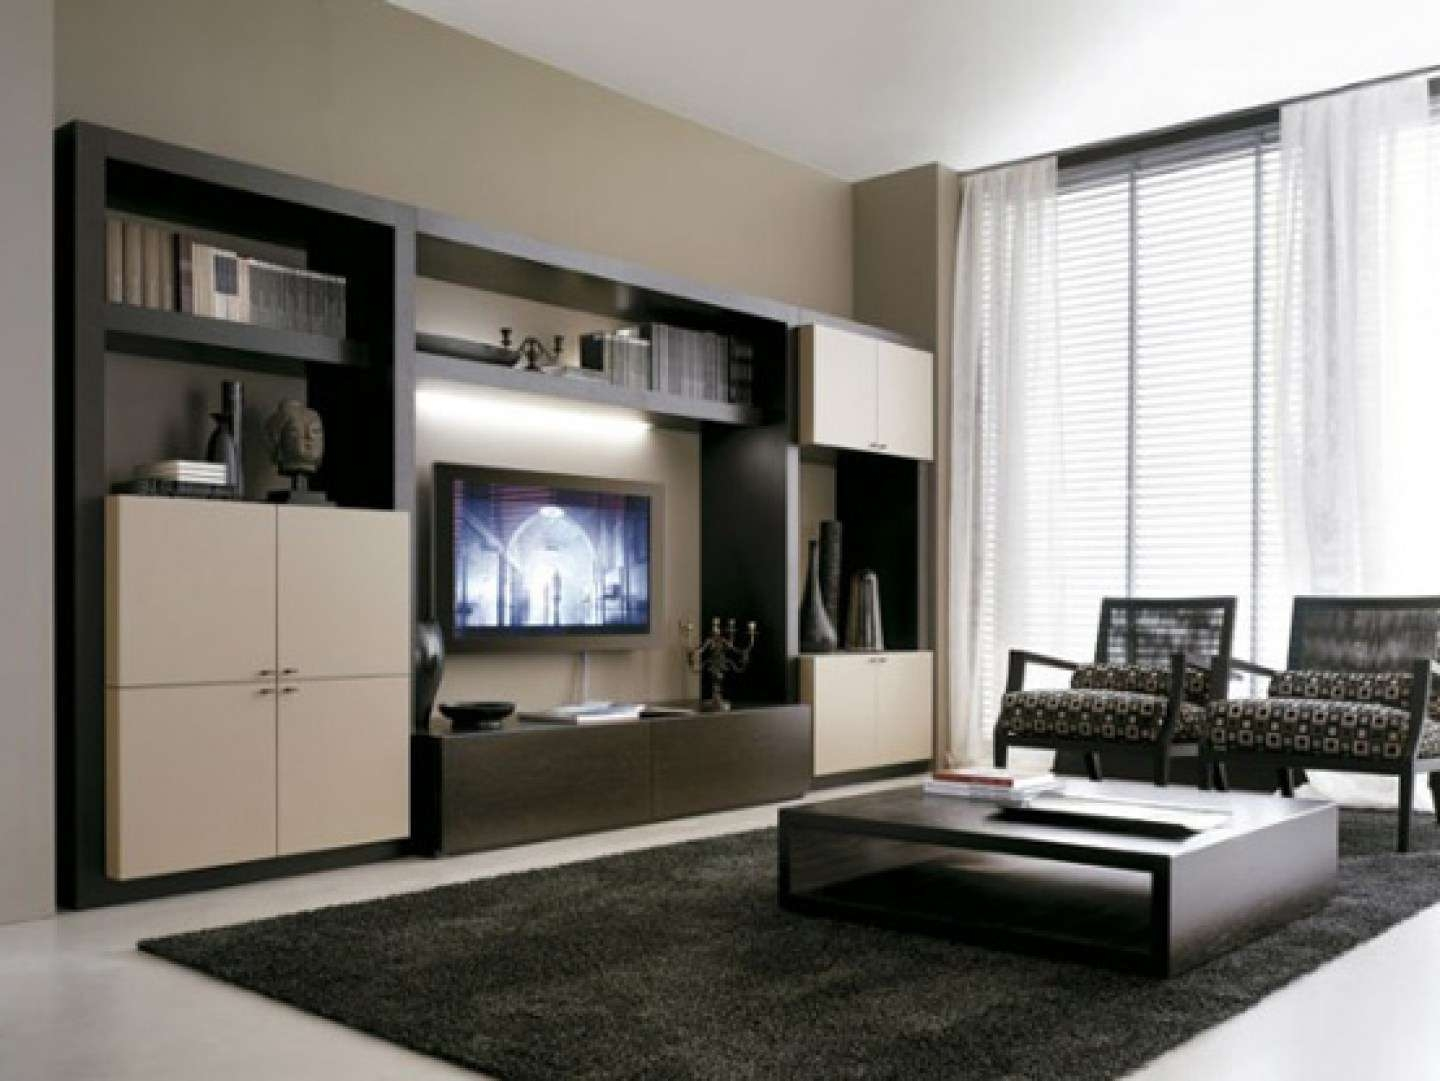 20 Modern Tv Unit Design Ideas For Bedroom Living Room With Intended For Stylish Tv Cabinets (View 1 of 20)